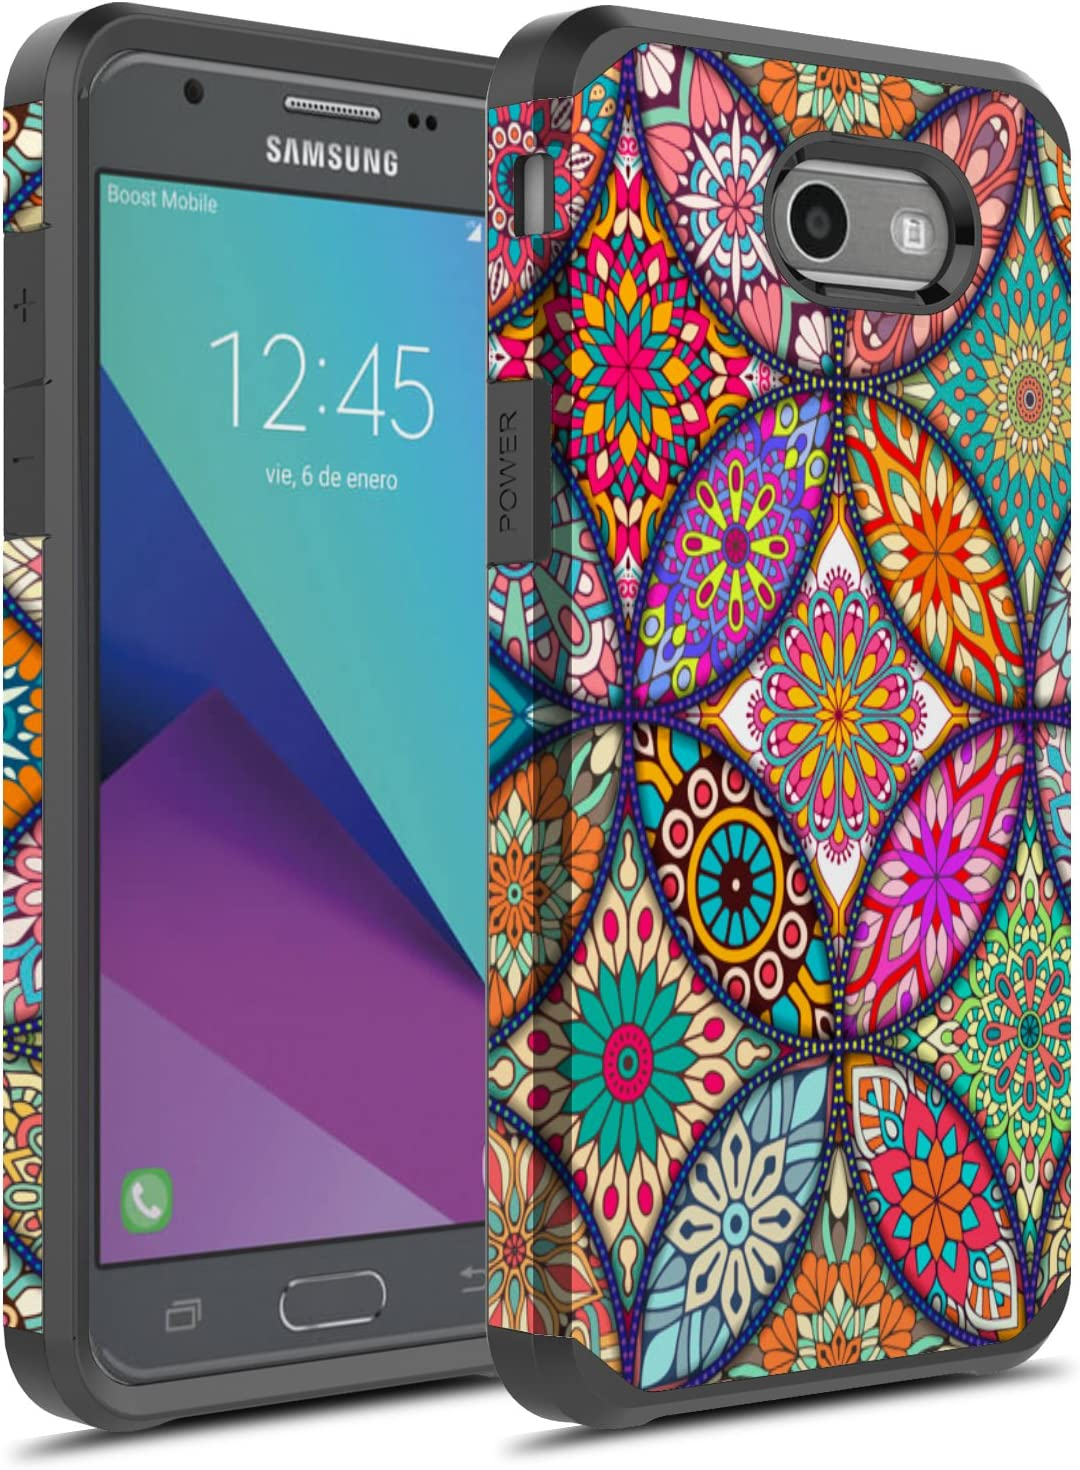 Galaxy J7 V 2017 Case,Galaxy J7 Perx Case,Galaxy J7 Prime// J7 Sky Pro//Halo Case with Screen Protector,NiuBox Dual Layer Armor Shock Absorption Protective Phone Case for Samsung Galaxy J7V 2017-Black